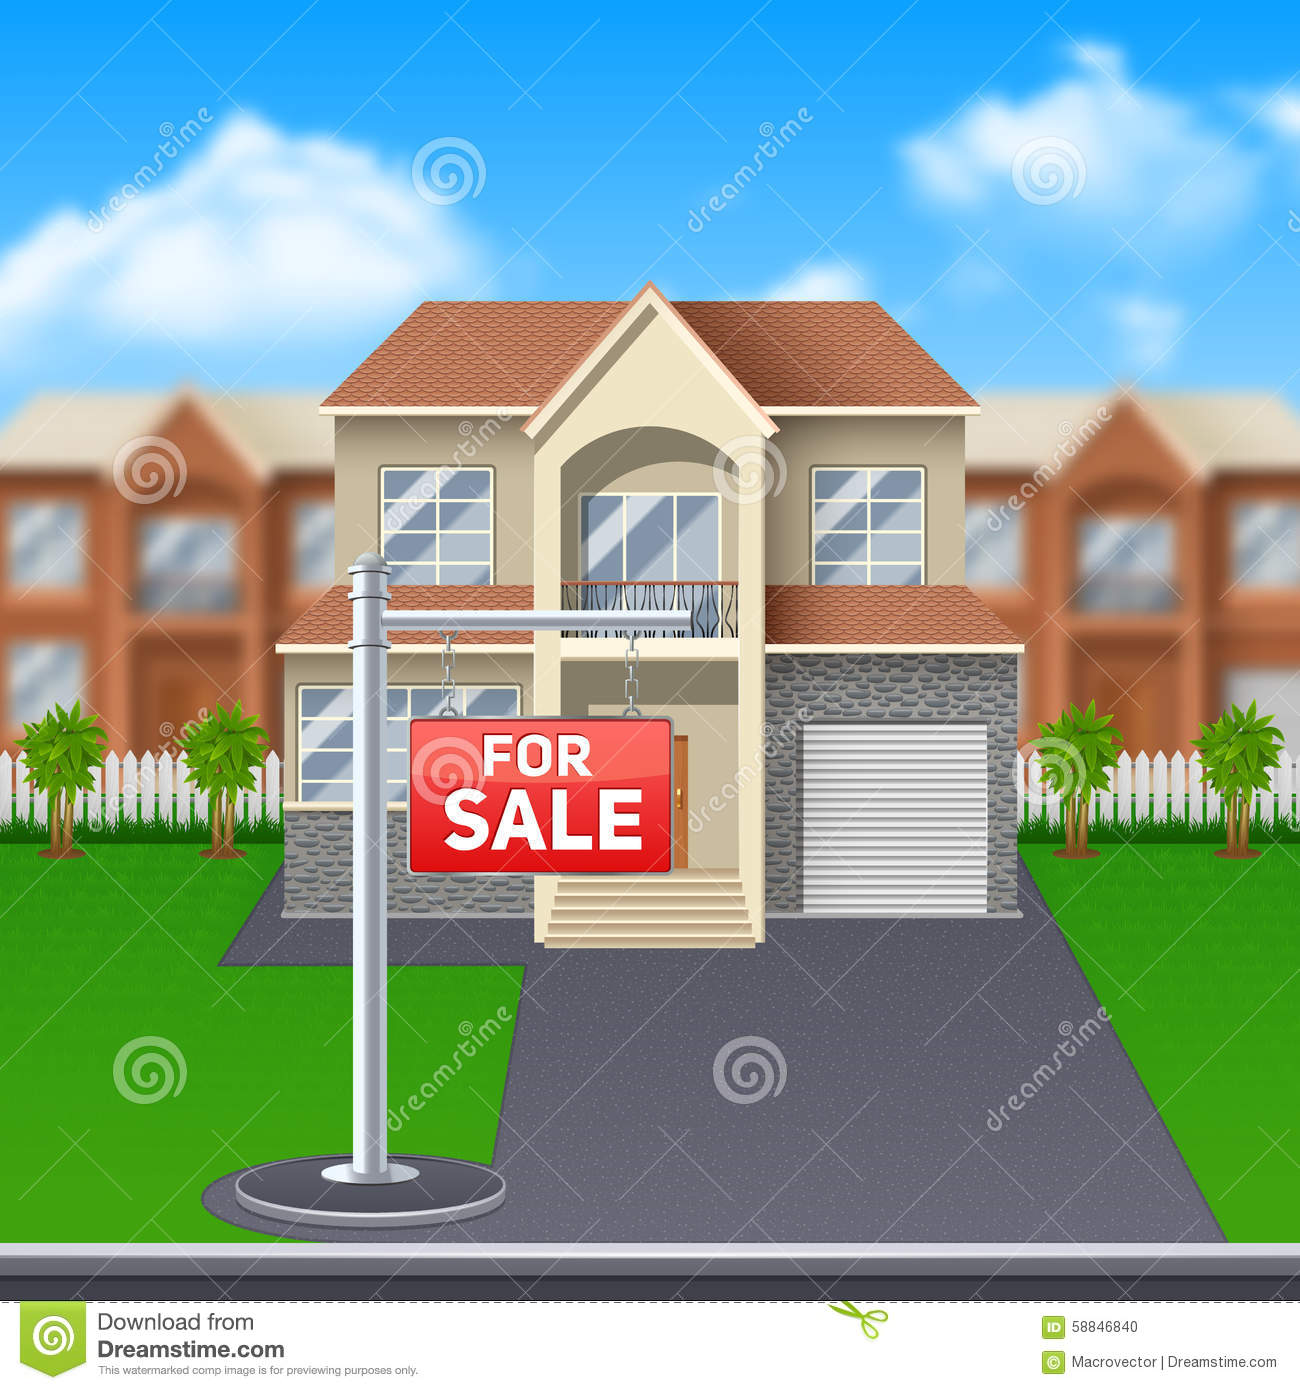 House for sale illustration stock vector image 58846840 for Large house windows for sale